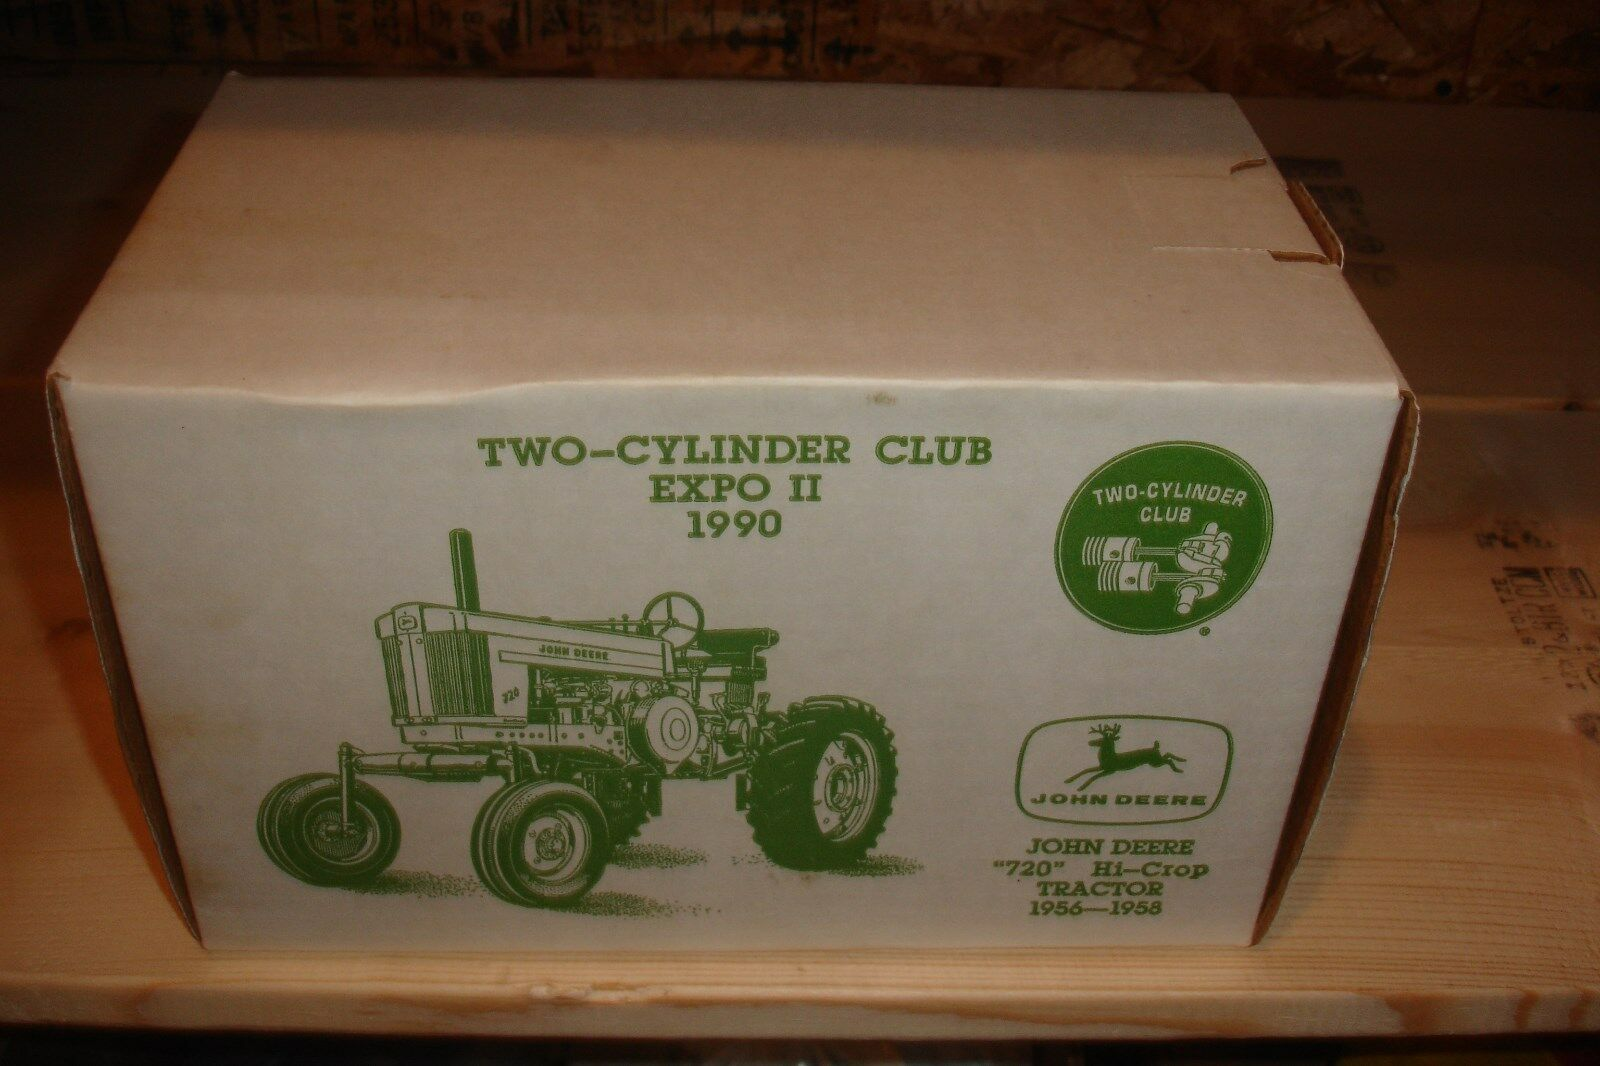 1 16 John Deere 720 Hi-Crop Tractor new in box - 2 Cyclinder Club Expo II 1990